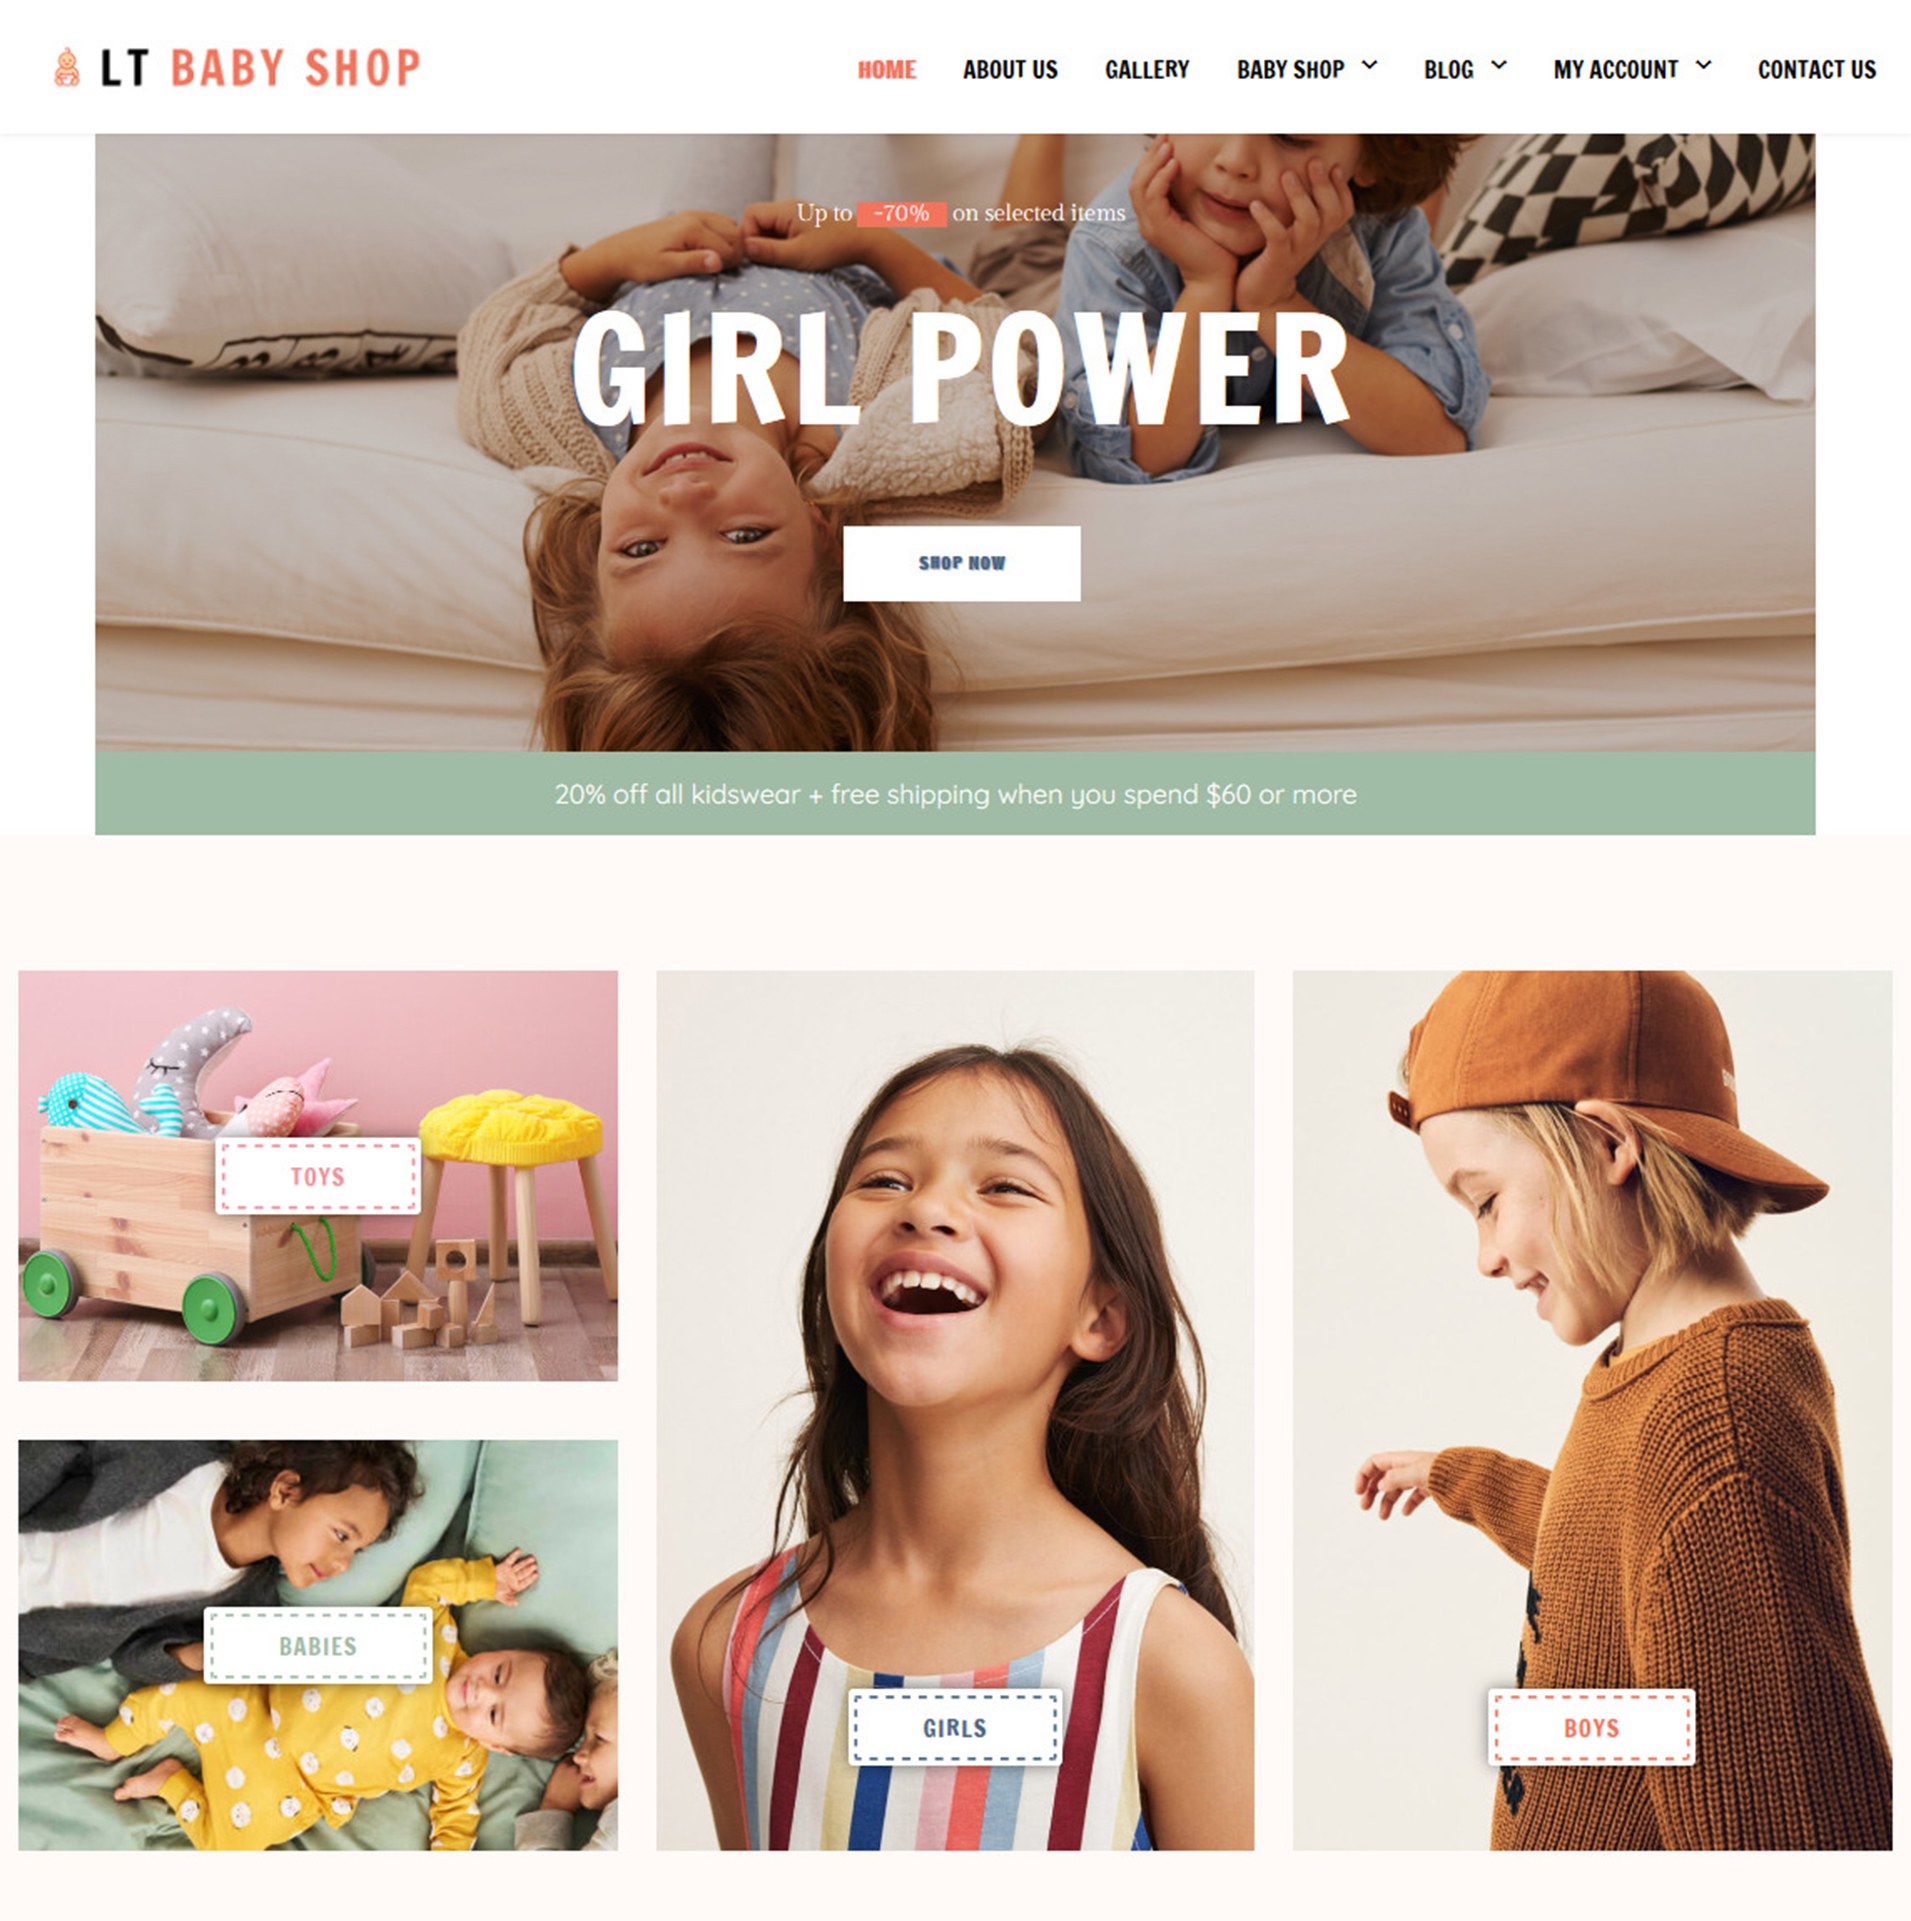 lt-baby-shop-free-responsive-wordpress-screen